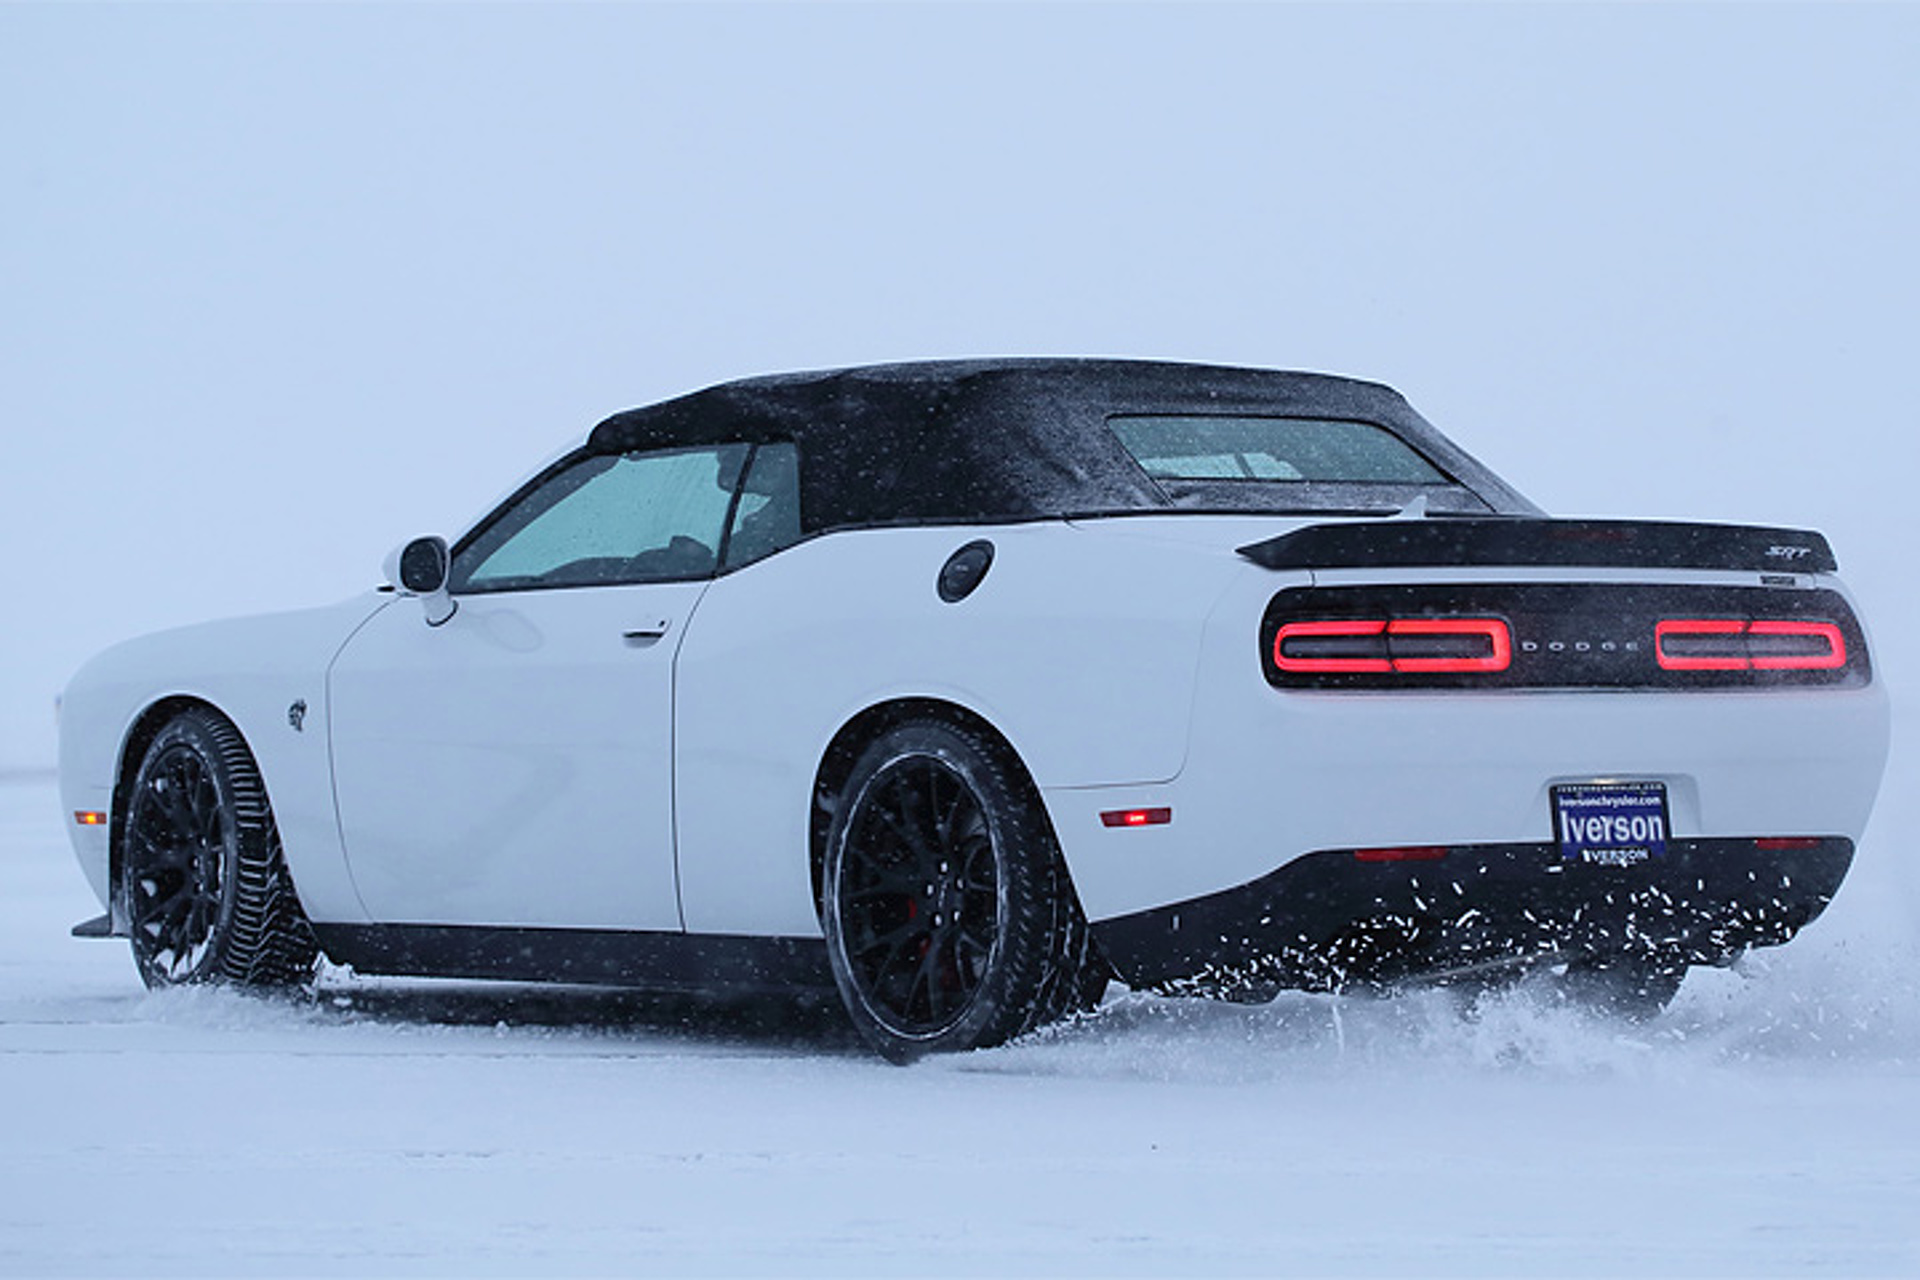 used dodge challenger for sale special offers edmunds - HD1950×1200